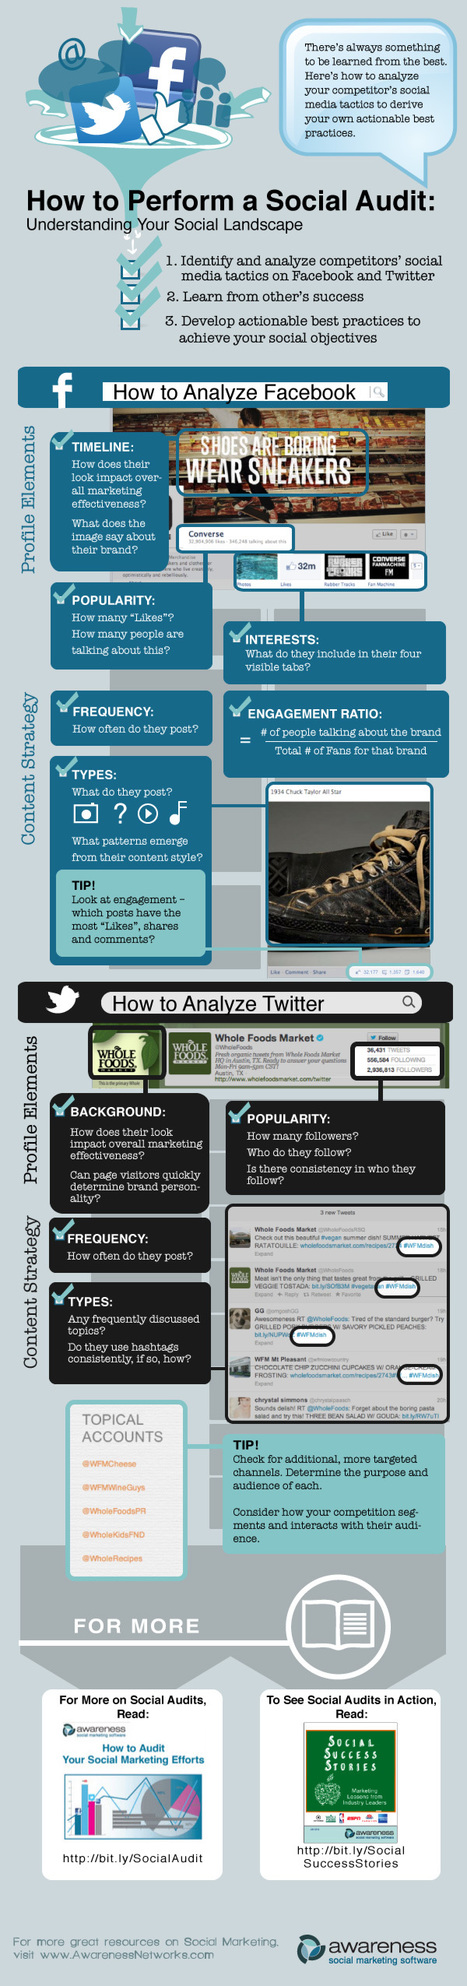 How to Perform a Social Audit [Infographic] | Marketing & Webmarketing | Scoop.it